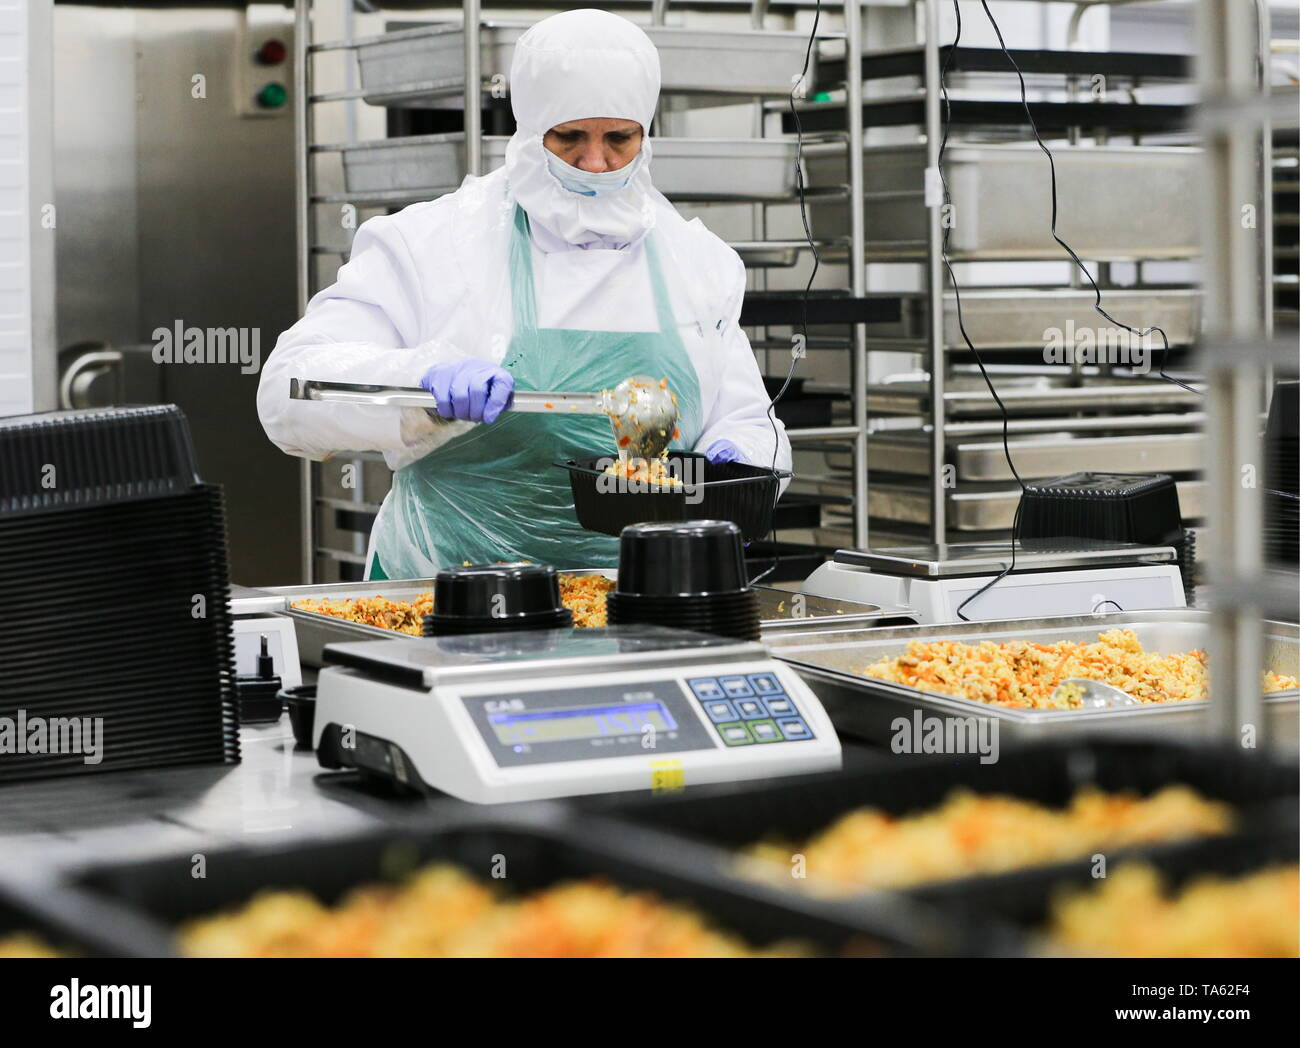 Russia. 22nd May, 2019. MOSCOW REGION, RUSSIA - MAY 22, 2019: An employee packages pilau at the Smart Kitchen launched by the Perekrestok supermarket chain; measuring 26,000sqm in area, the kitchen produces more than 200 various articles of food under the brand name Chef Perekrestok to supply to the Perekrestok supermarkets, Gavriil Grigorov/TASS Credit: ITAR-TASS News Agency/Alamy Live News - Stock Image